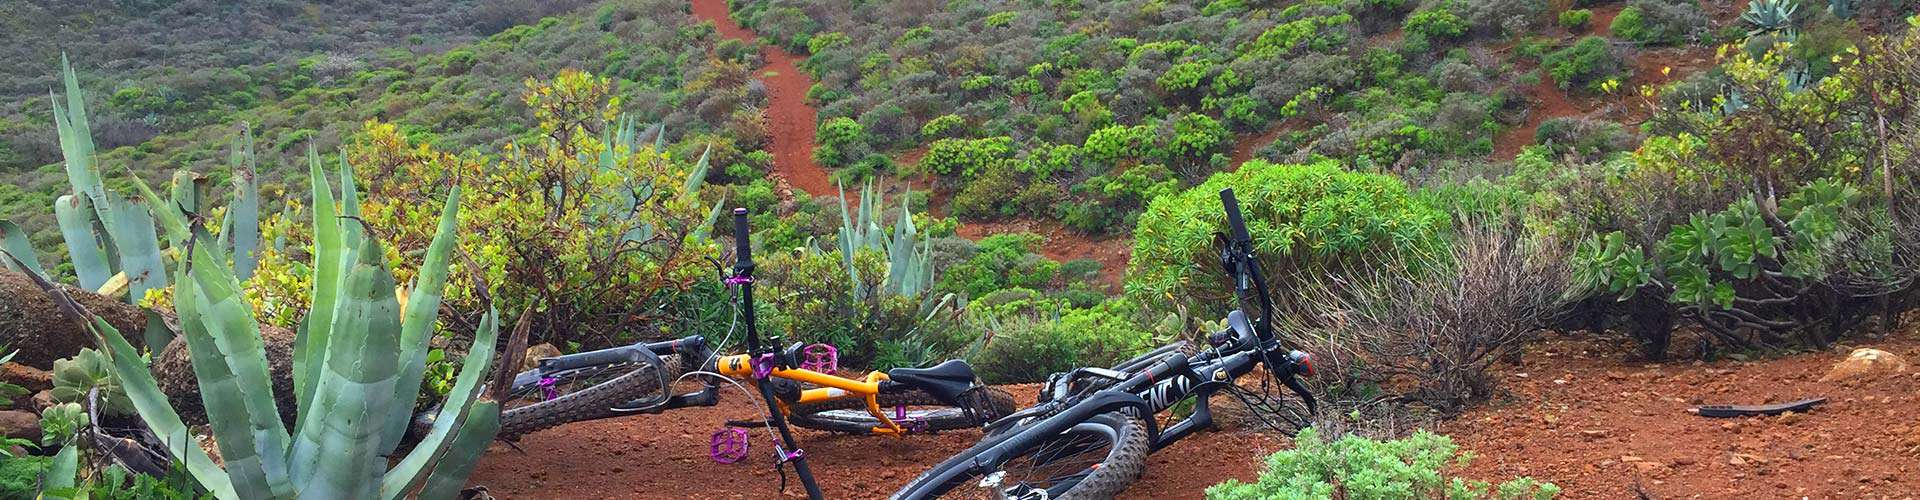 Gran Canaria: a tipical mountain bike trail view